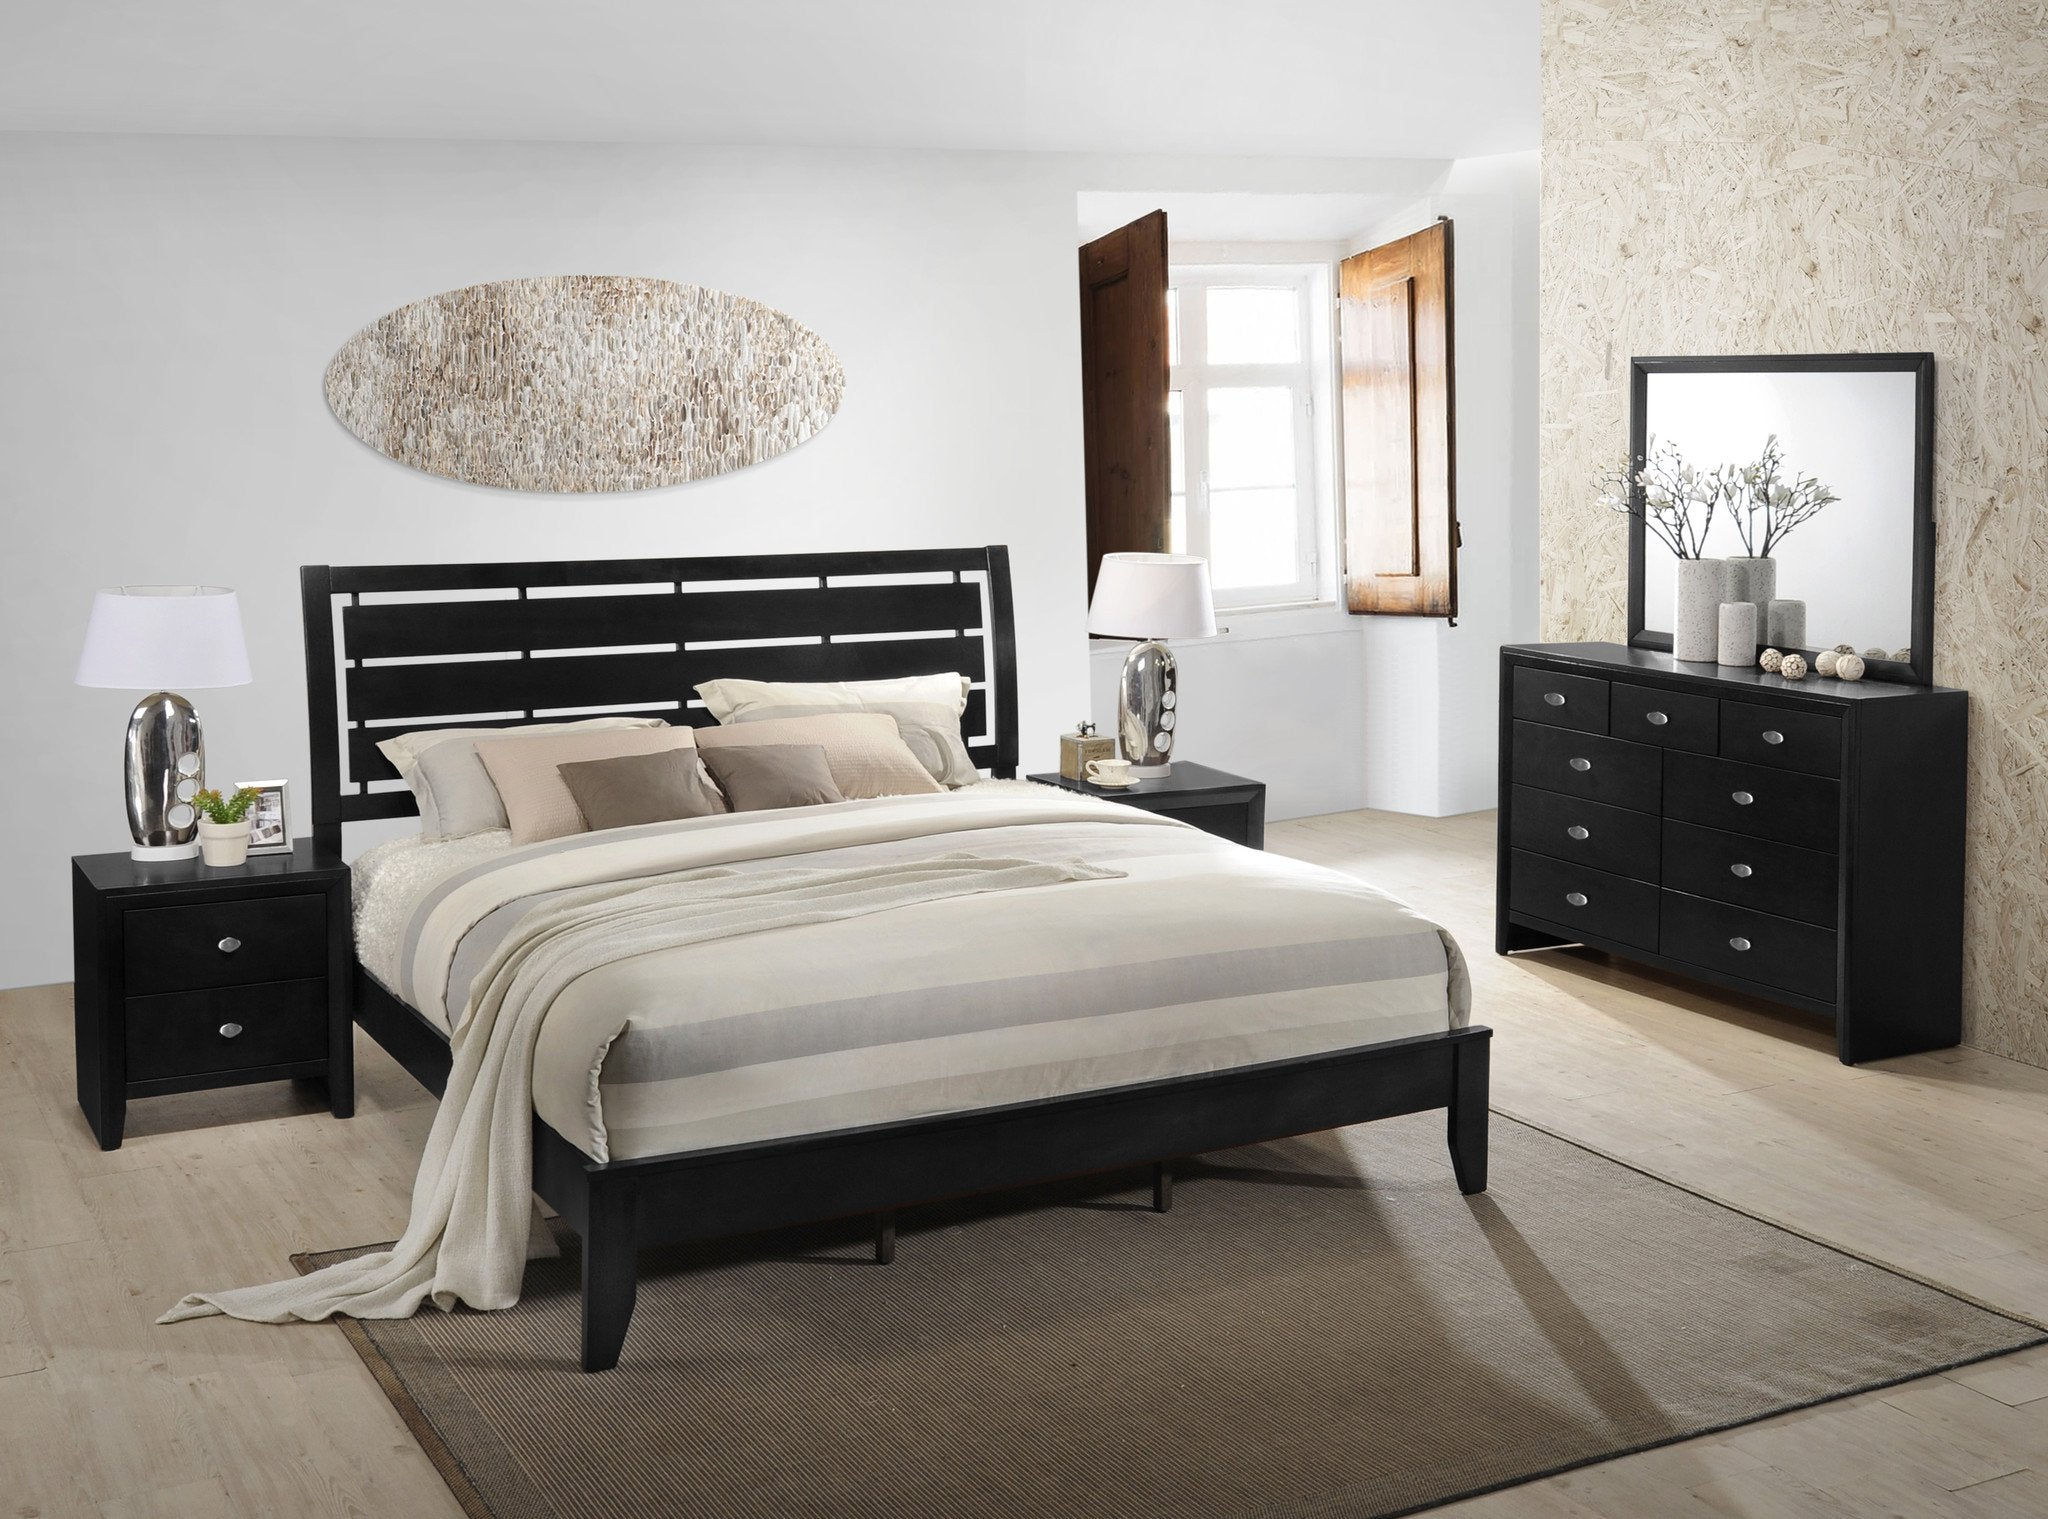 Ecrille 350 Black Wood Leather Bed Room Set - QUEEN & KING Bed   Dresser   Mirror   2 Night Stand